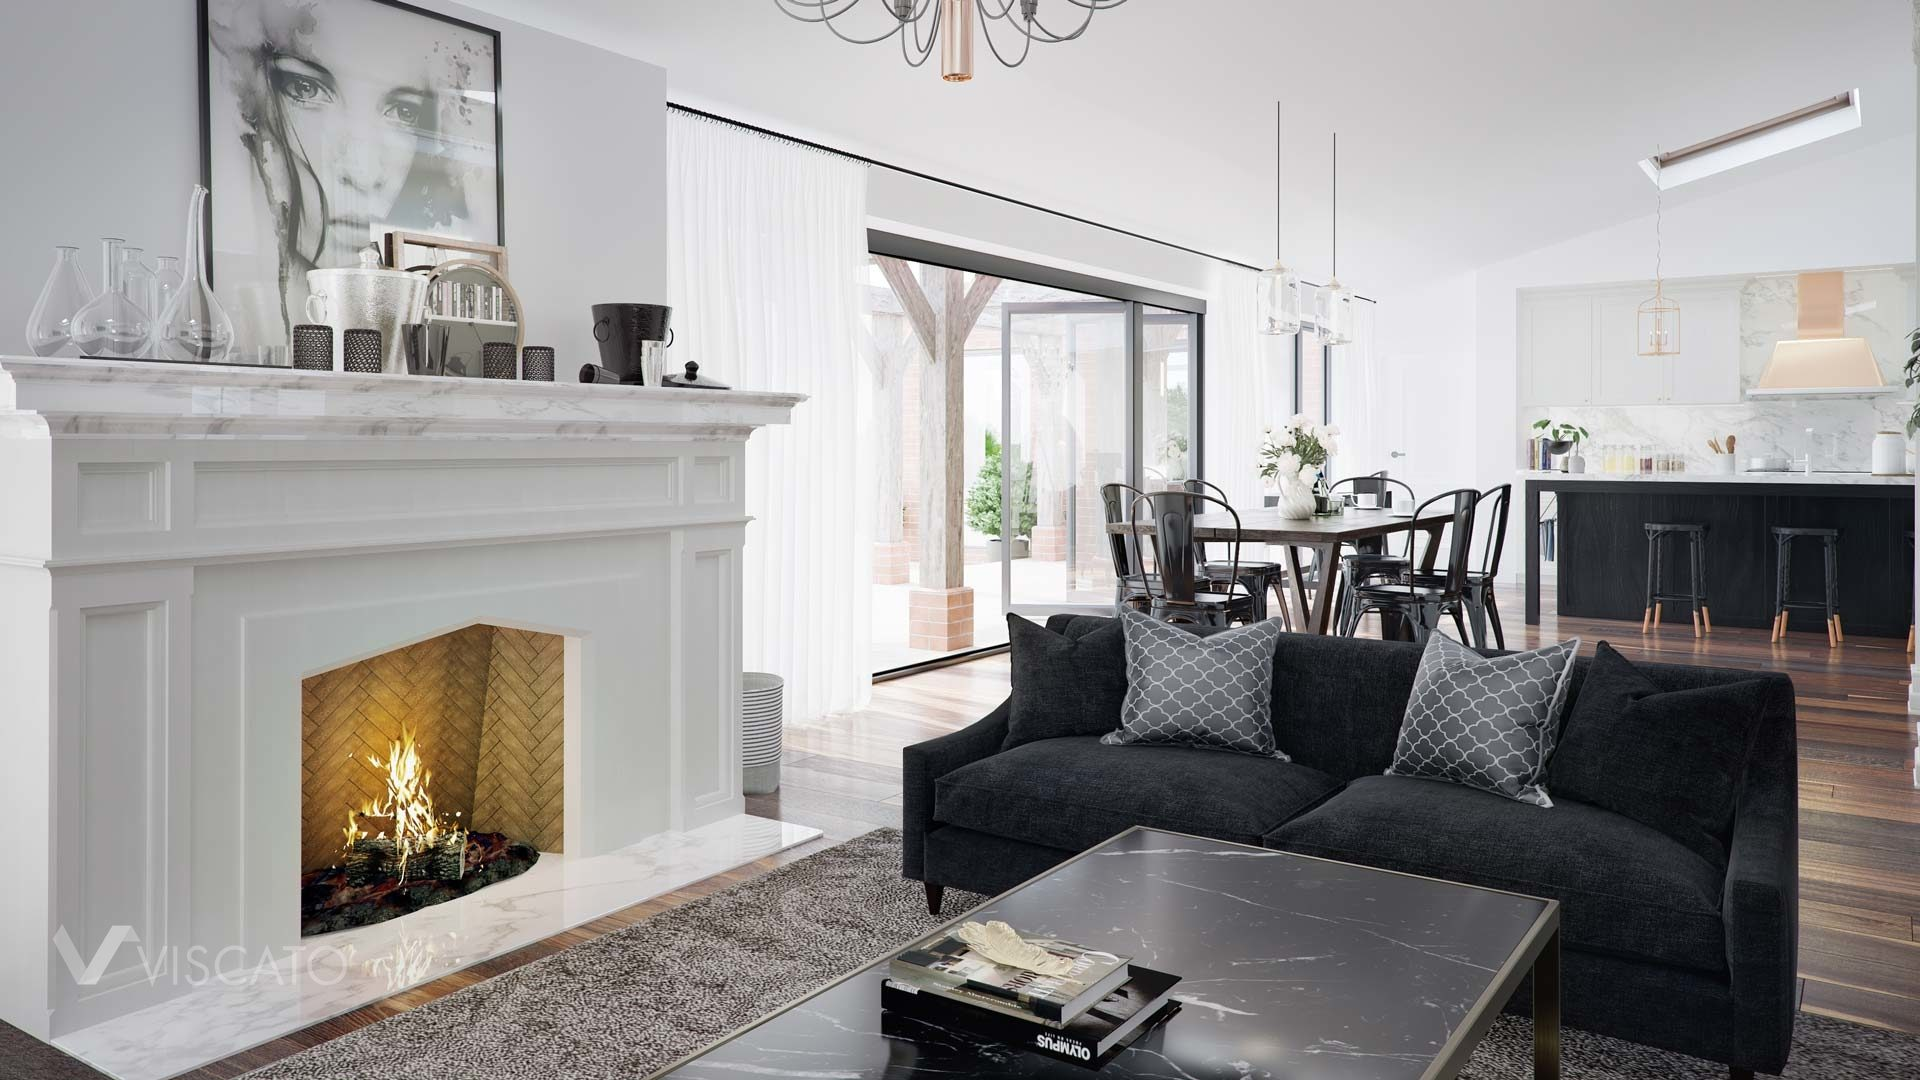 elegant interior with a fireplace in 3D, Viscato